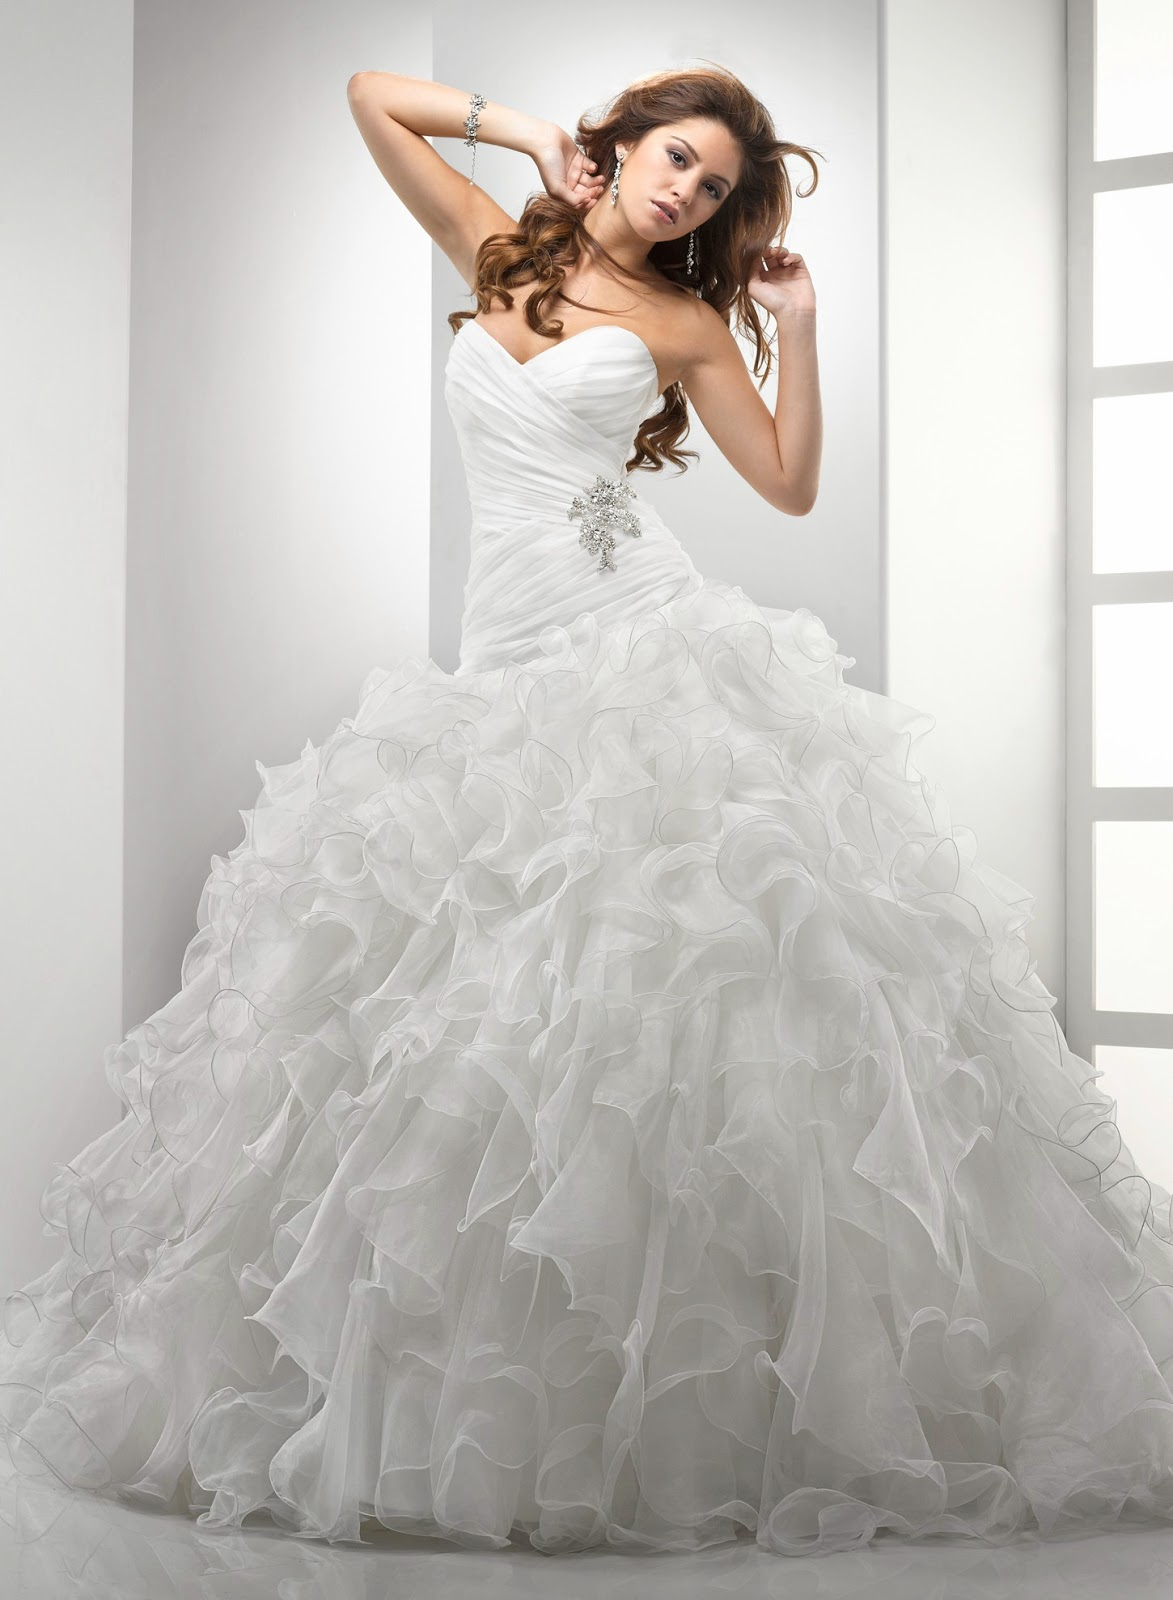 The Wedding Dresses Company Wedding Dresses Company